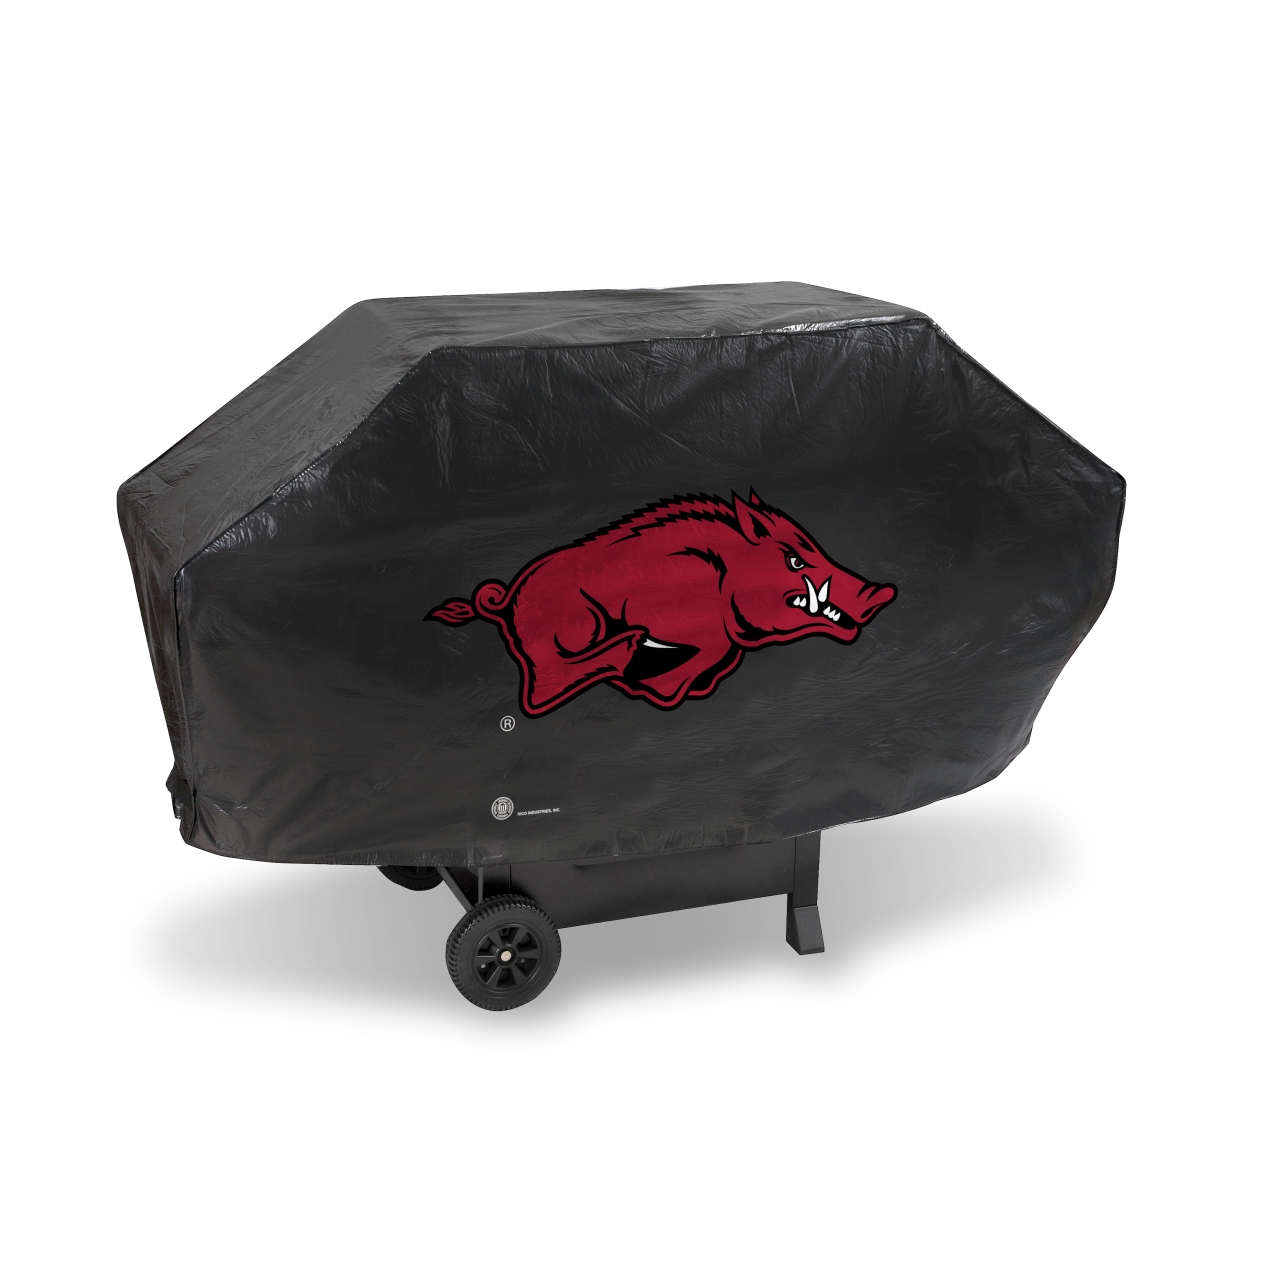 Deluxe Grill Cover - Arkansas